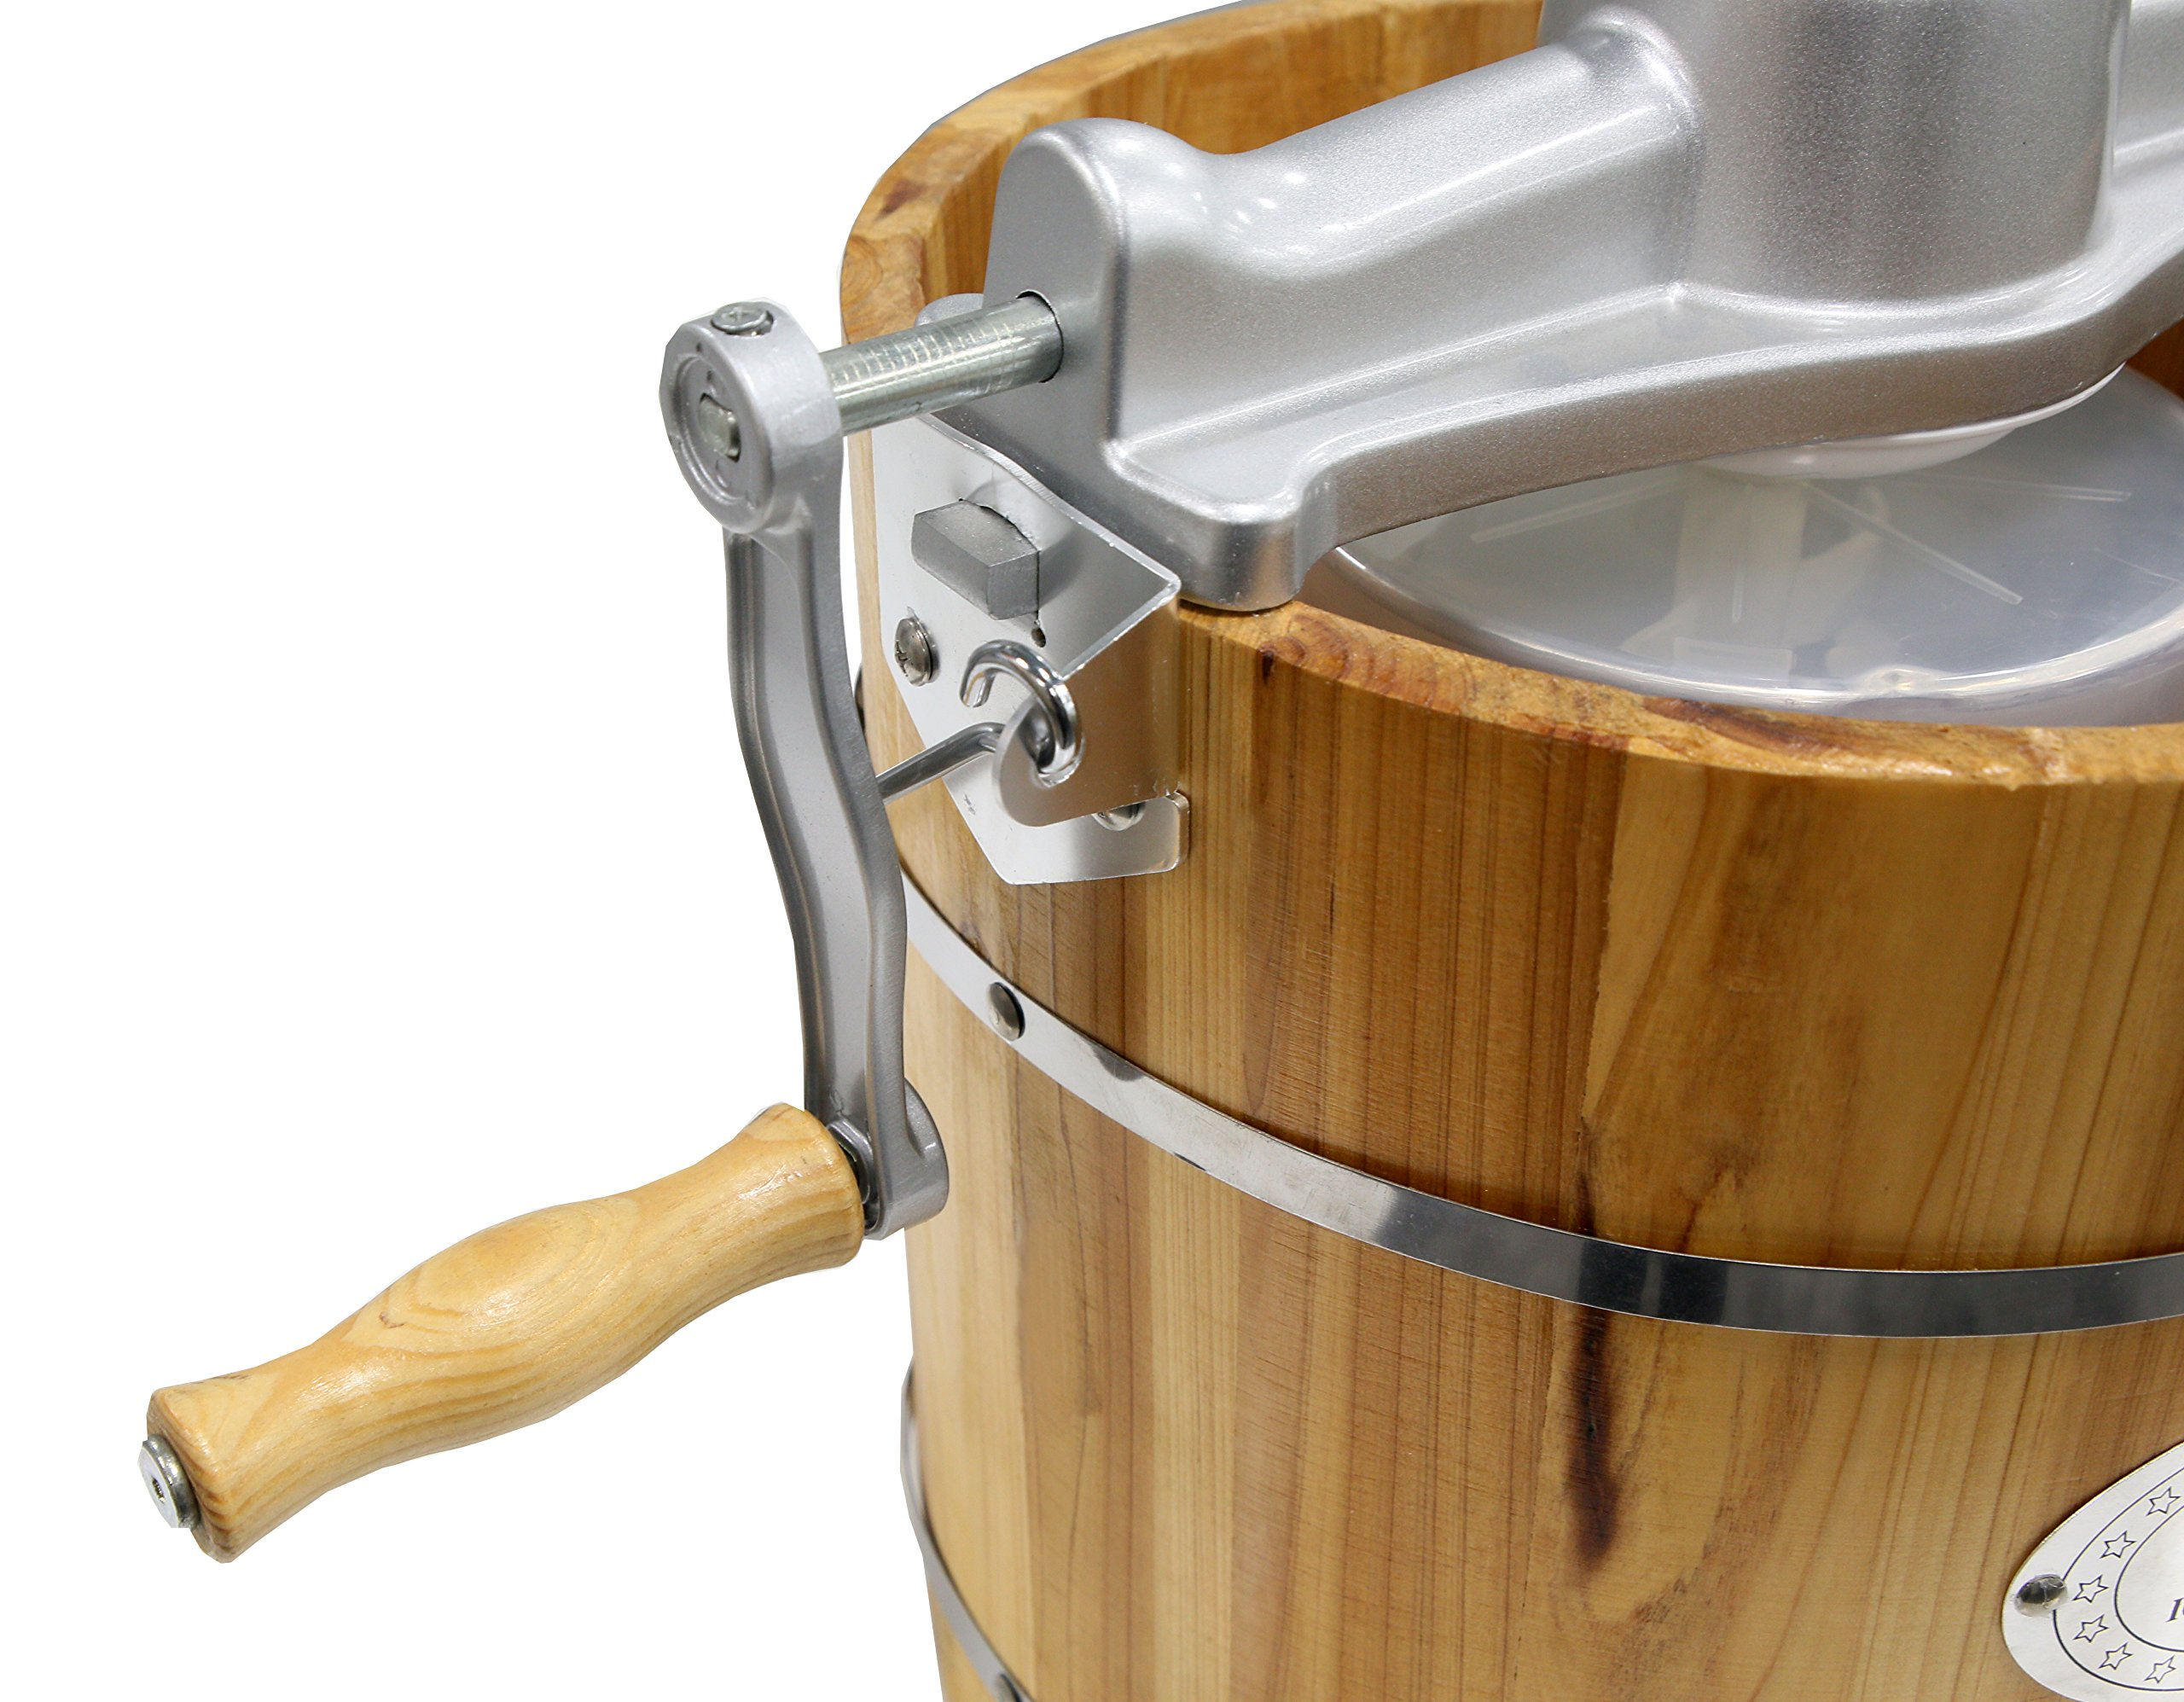 Elite Gourmet EIM-502 4 quart Old-Fashioned Ice Cream Maker with electric motor and hand crank, maple by Maxi-Matic (Image #3)